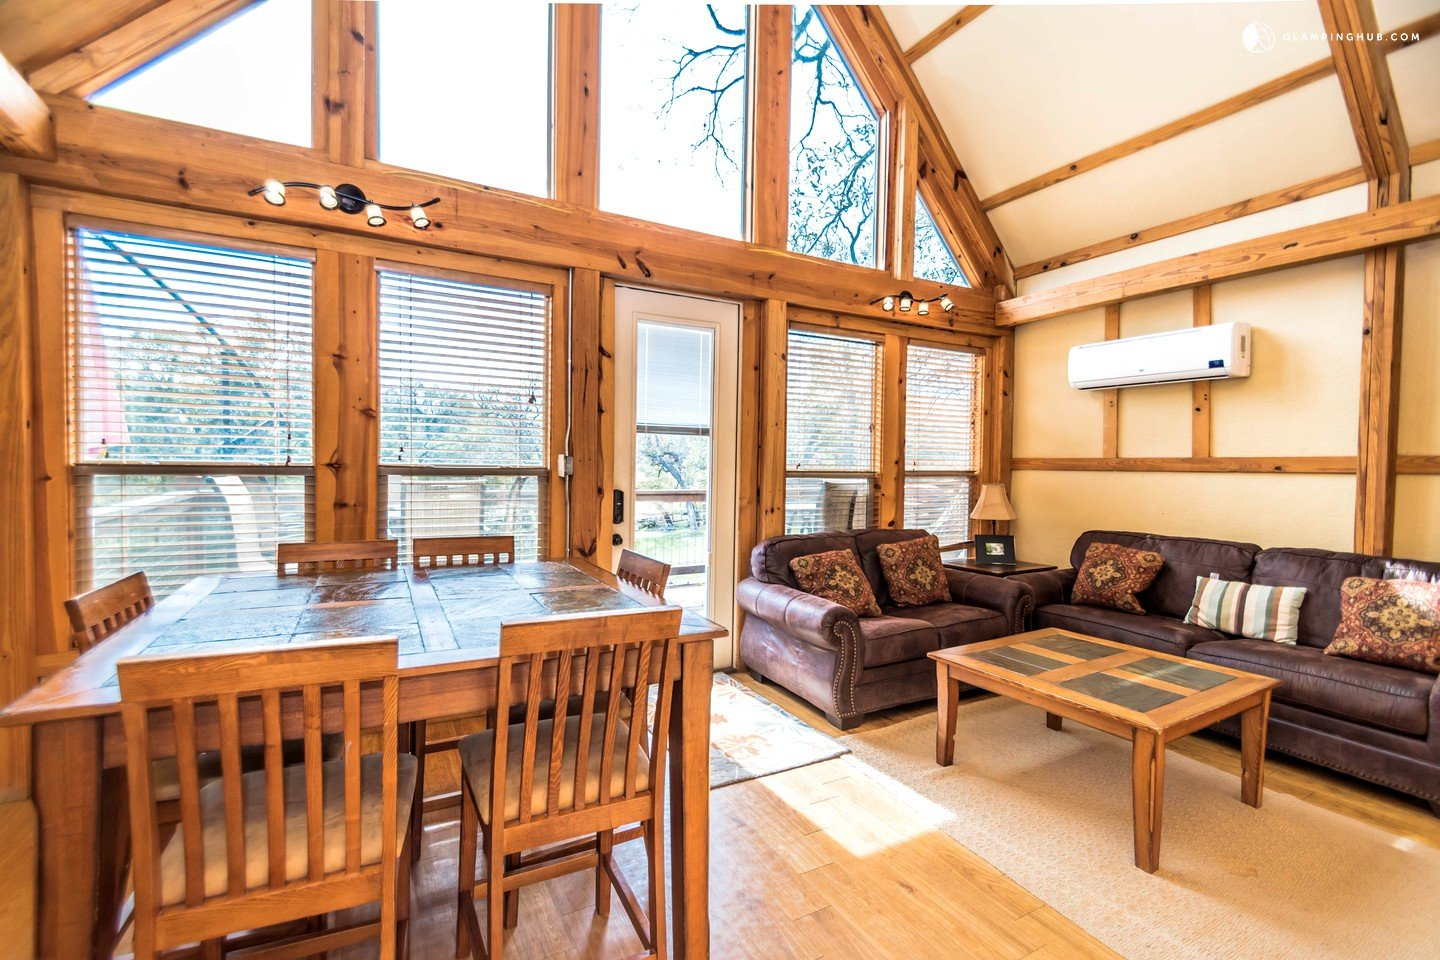 New Braunfels Camping >> Tree House Rentals in New Braunfels